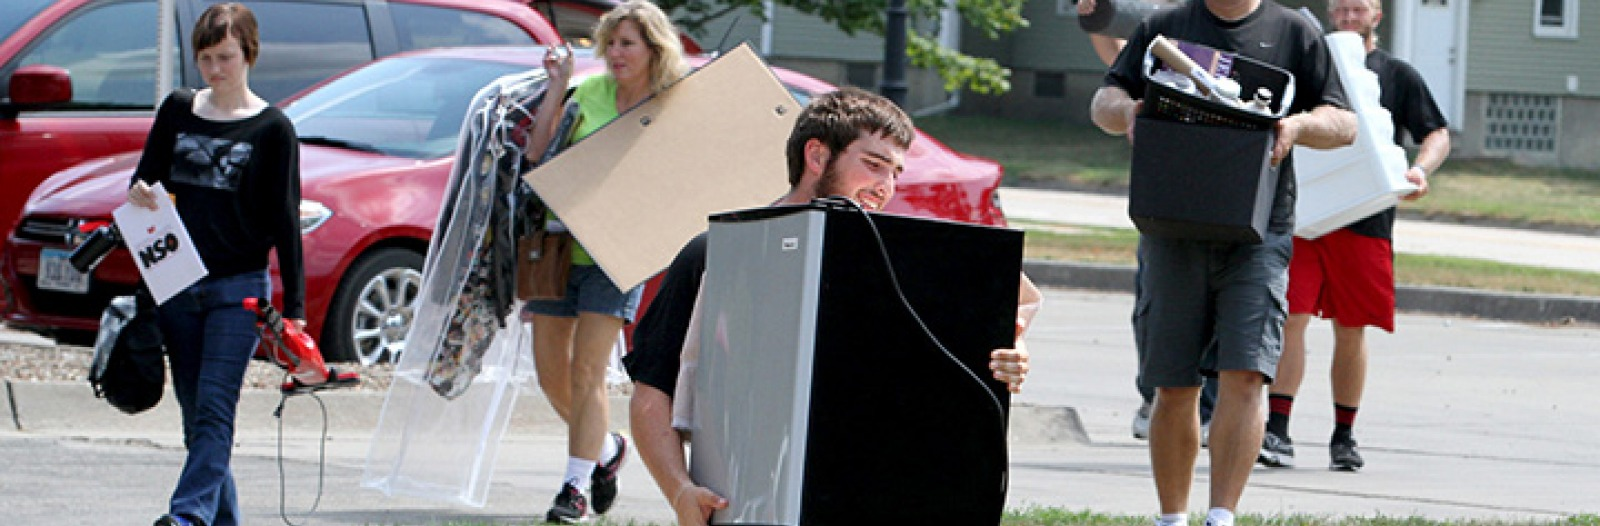 Family members help students carry belongings to a residence hall.